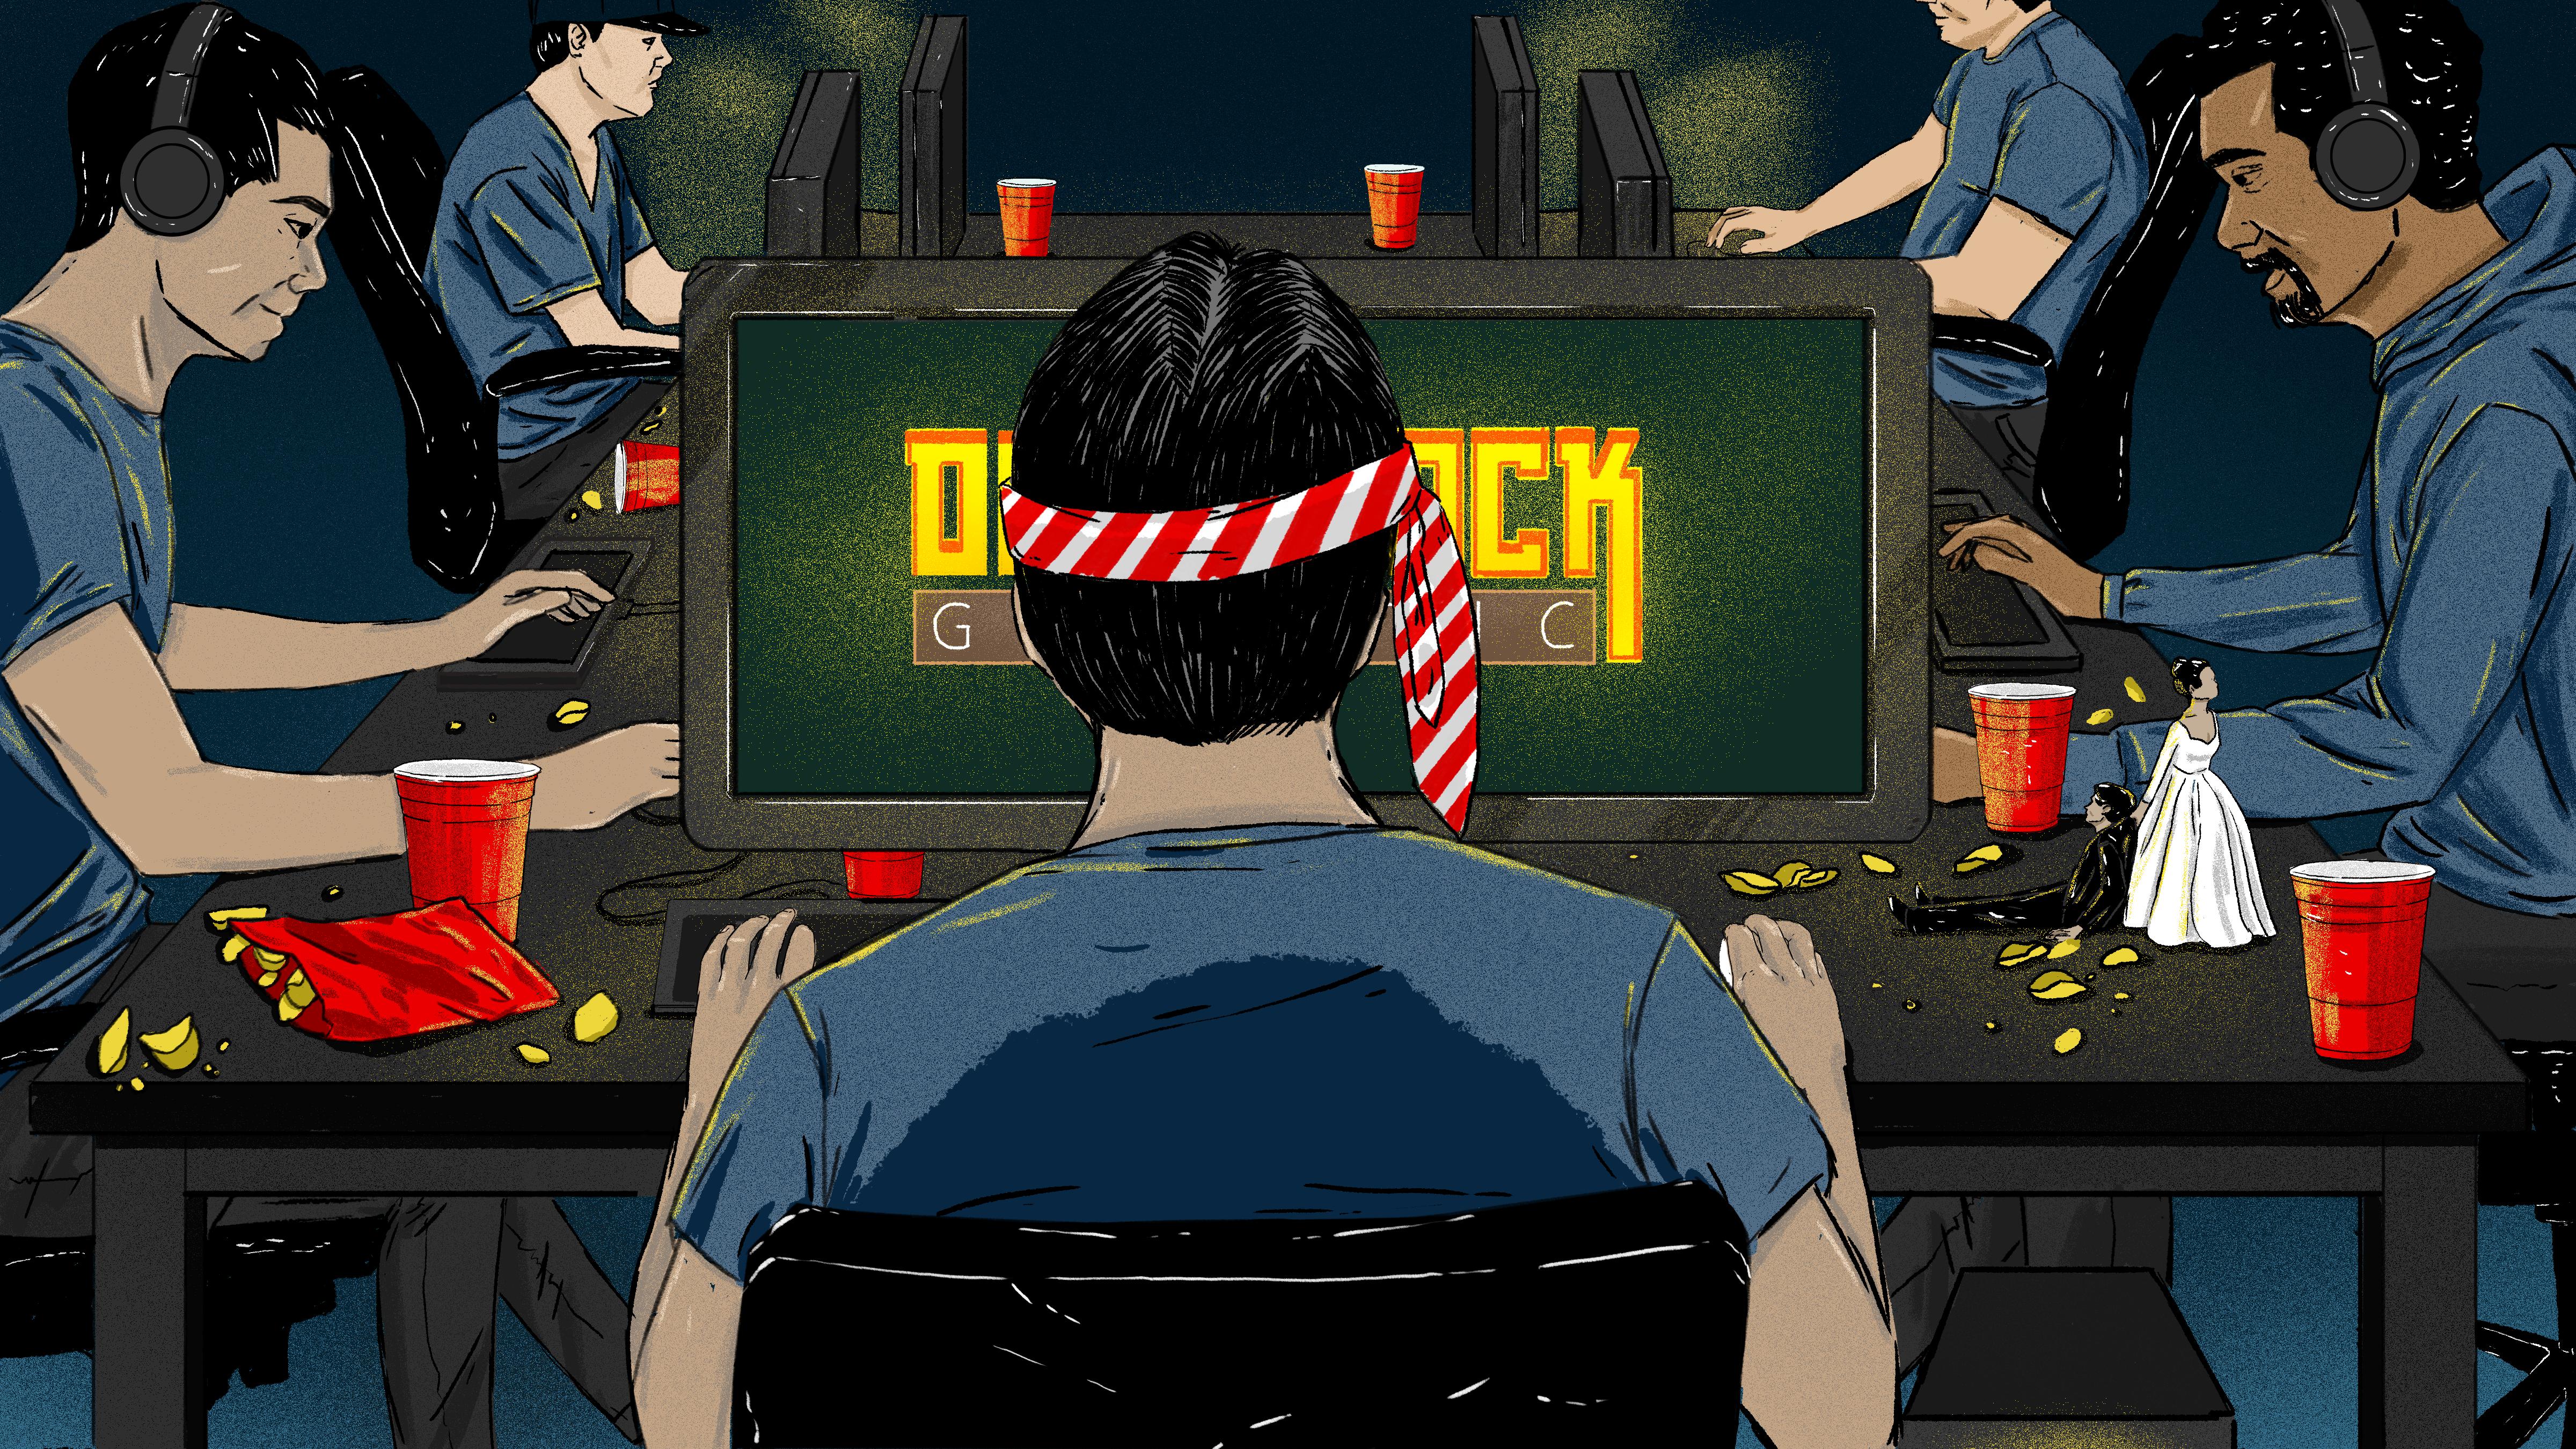 Strip Clubs? Nah. The New Bachelor Party Is A Weekend Of Video Games